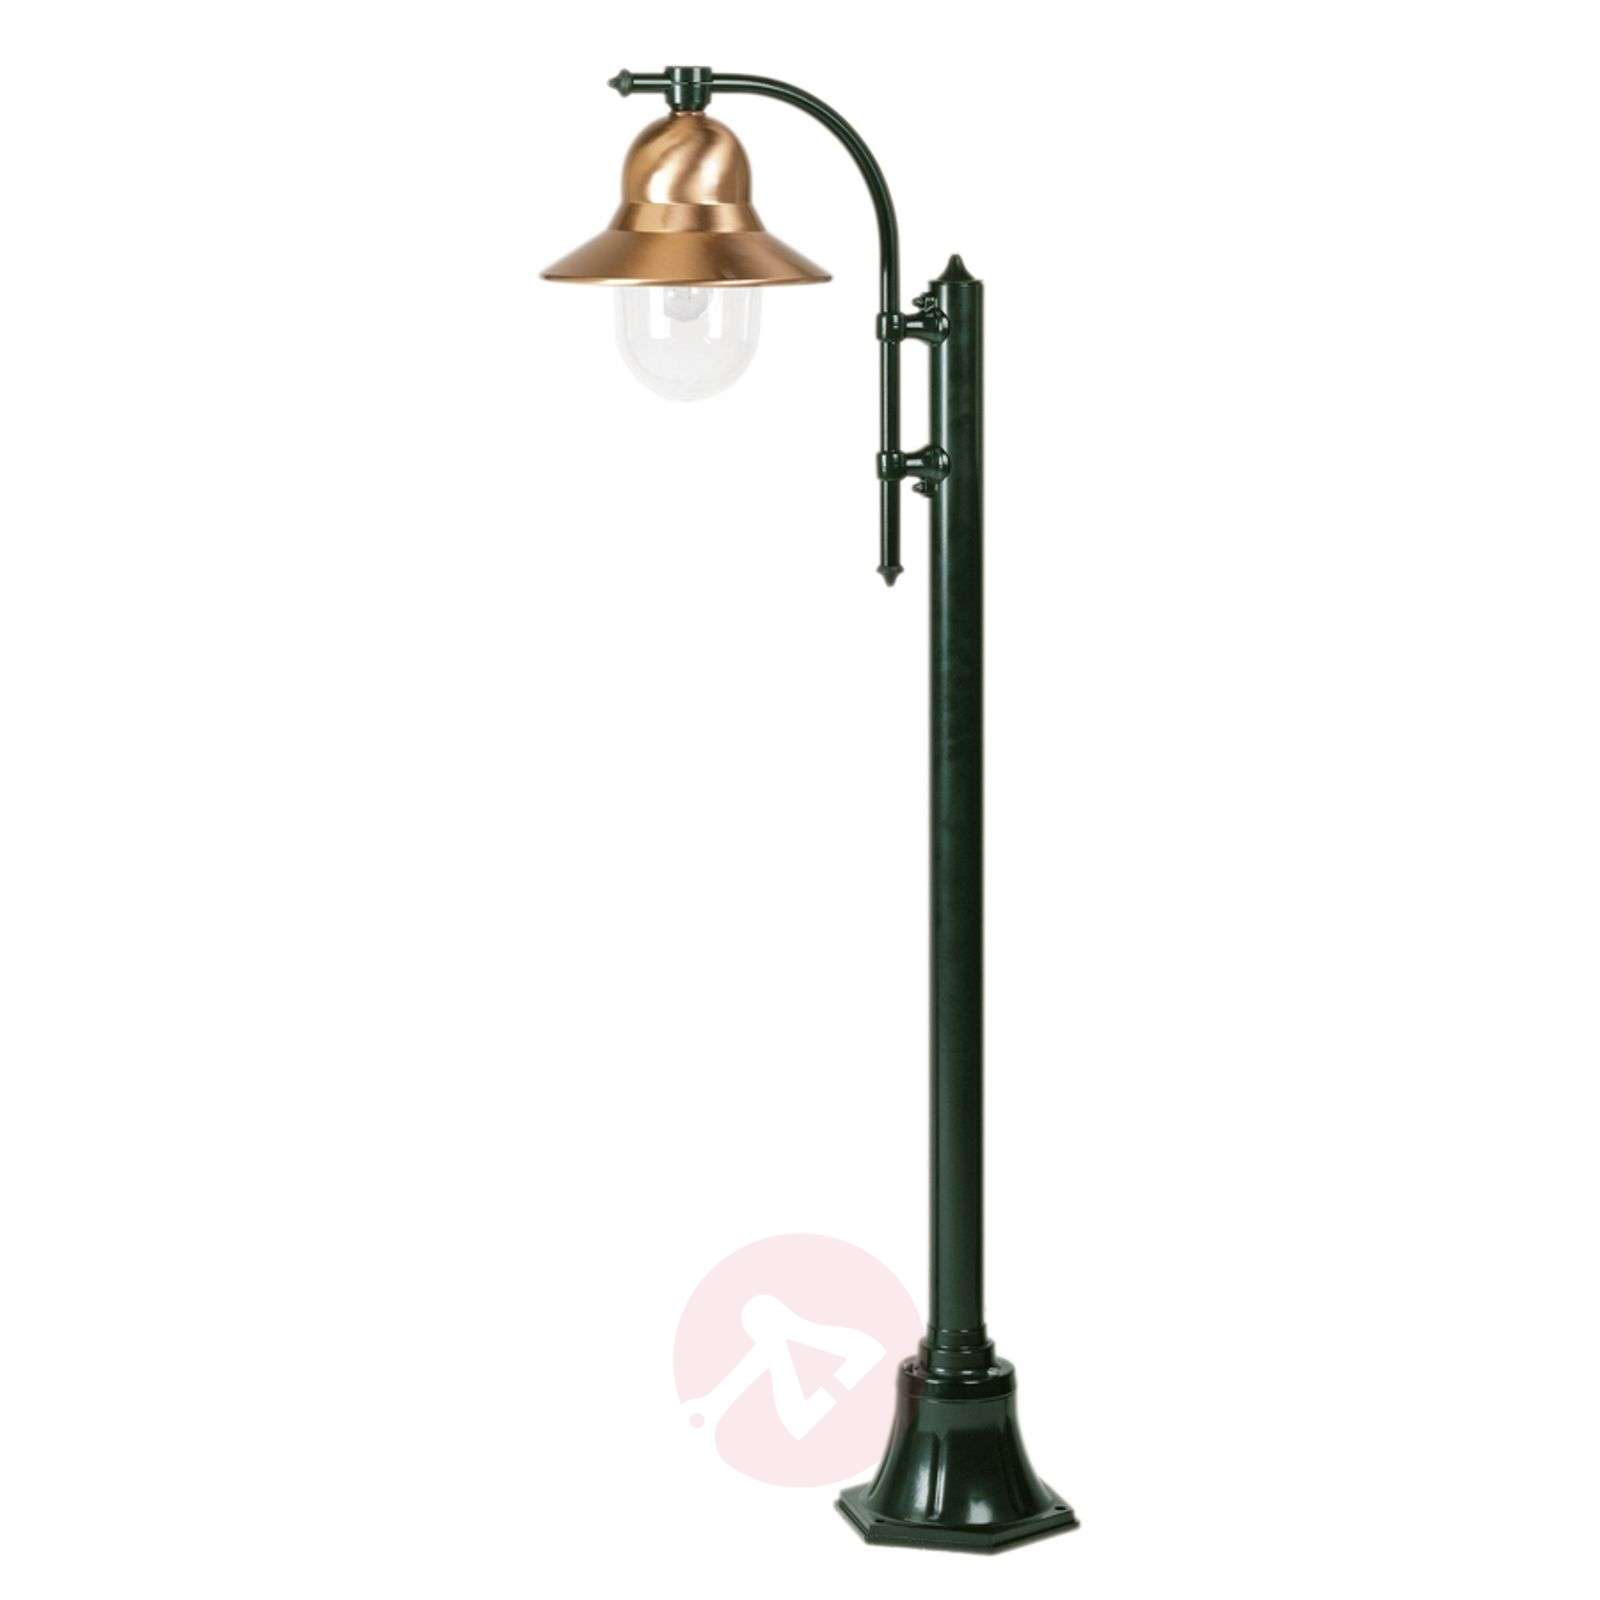 lampadaire toscane 1 lampe 150 cm. Black Bedroom Furniture Sets. Home Design Ideas